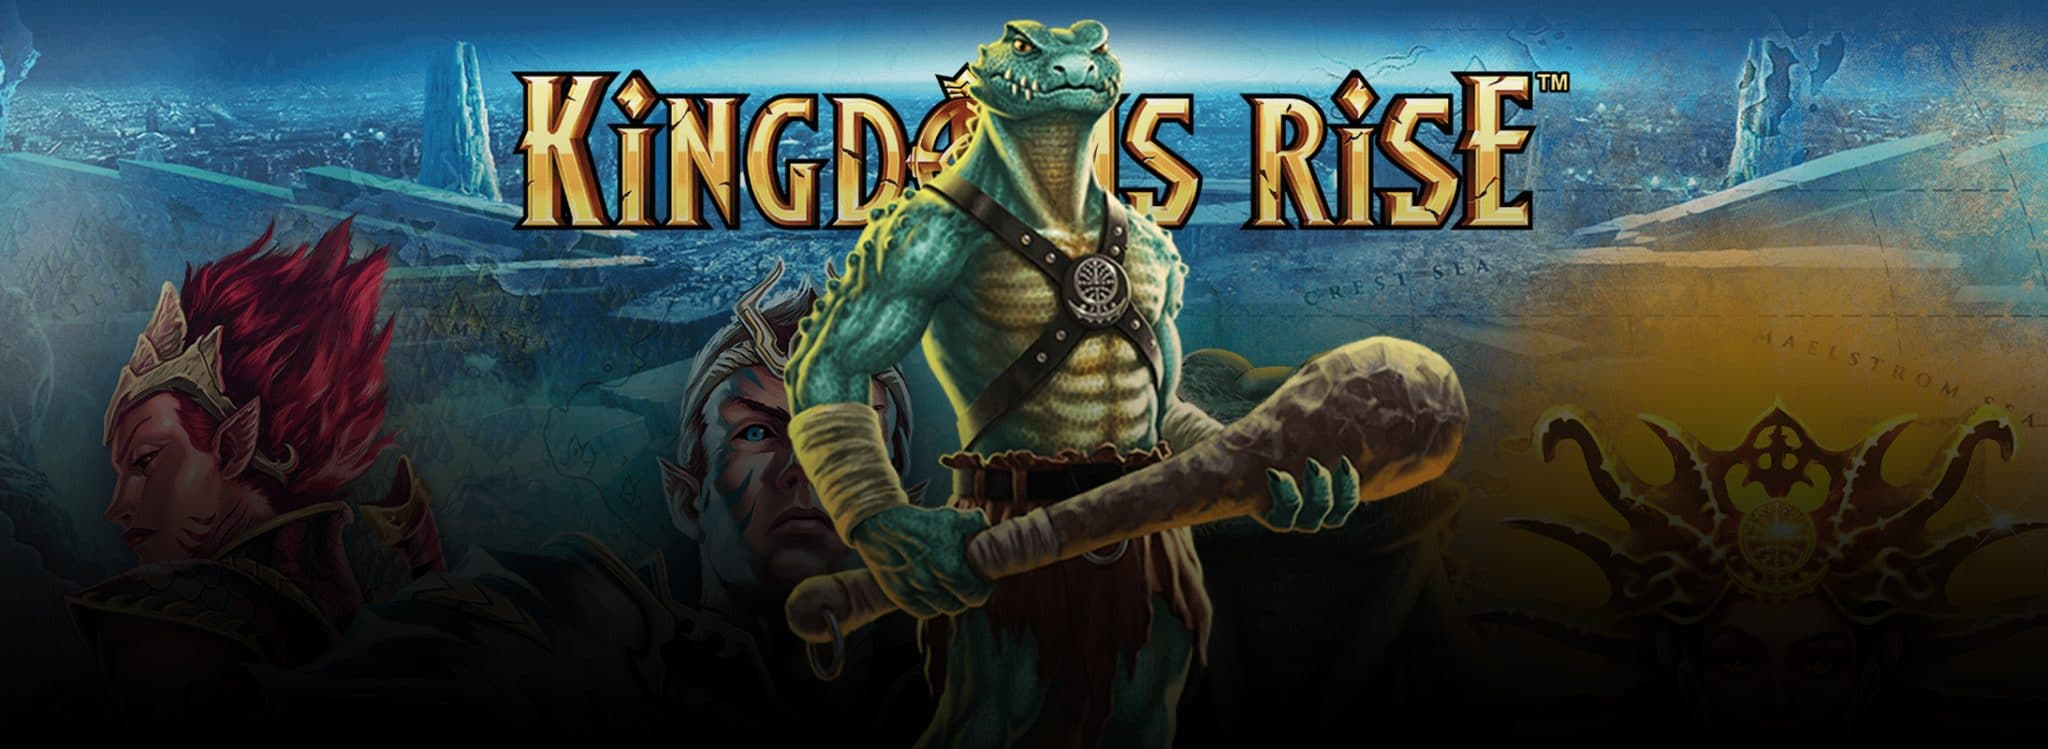 BGO Is Offering A Million Free Spins on Kingdoms Rise!